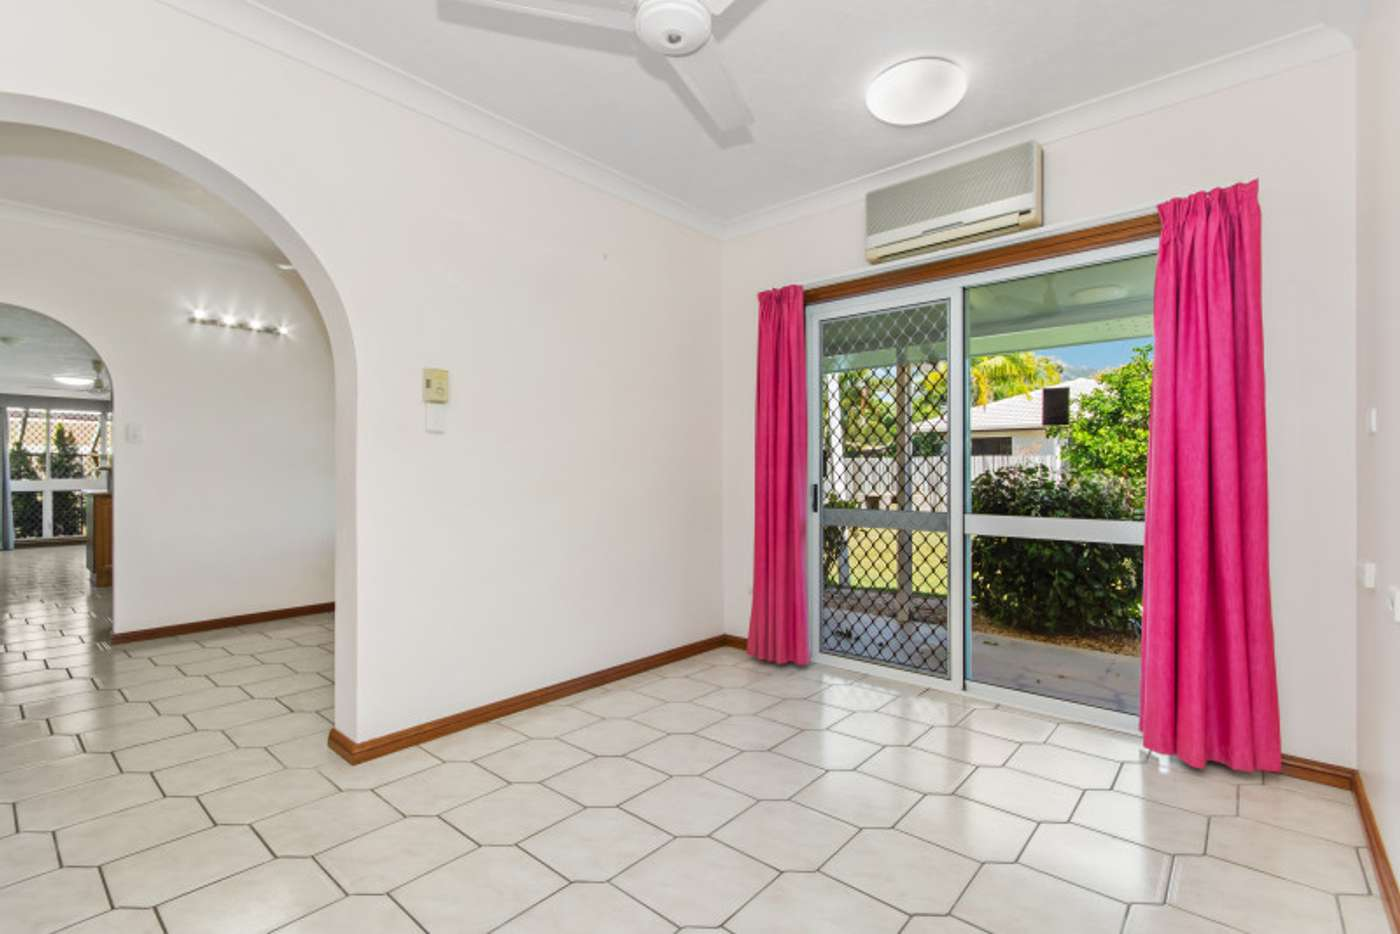 Fifth view of Homely house listing, 22 Jonquil Crescent, Annandale QLD 4814